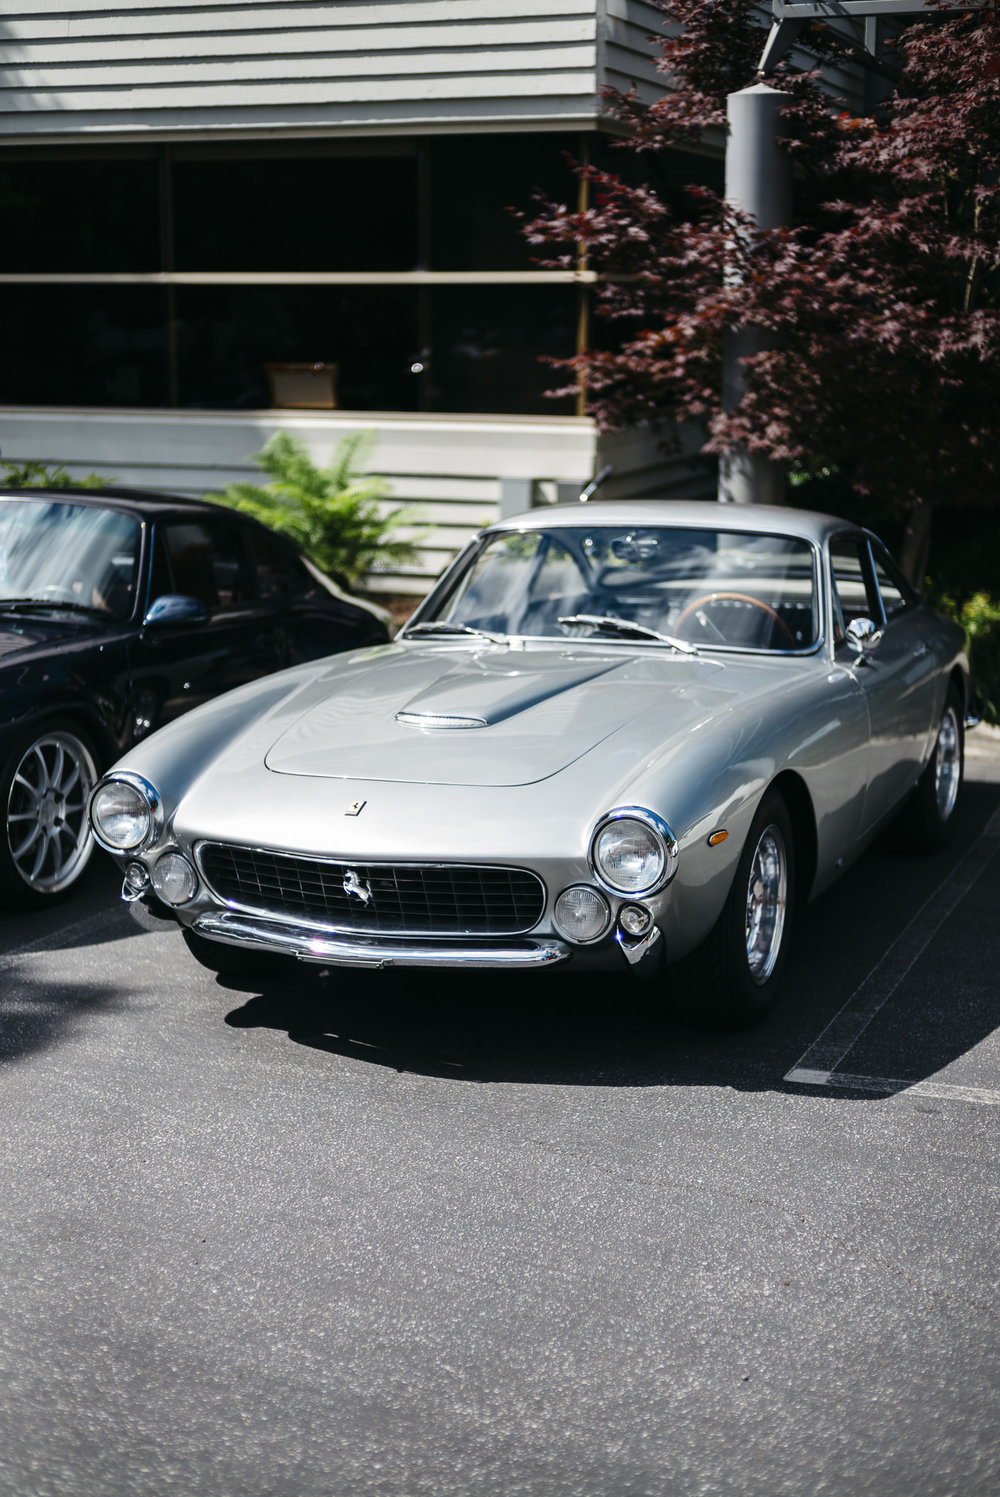 Ferrari 250. Shot with Leica M240 + Voigtlander 50mm F1.5.